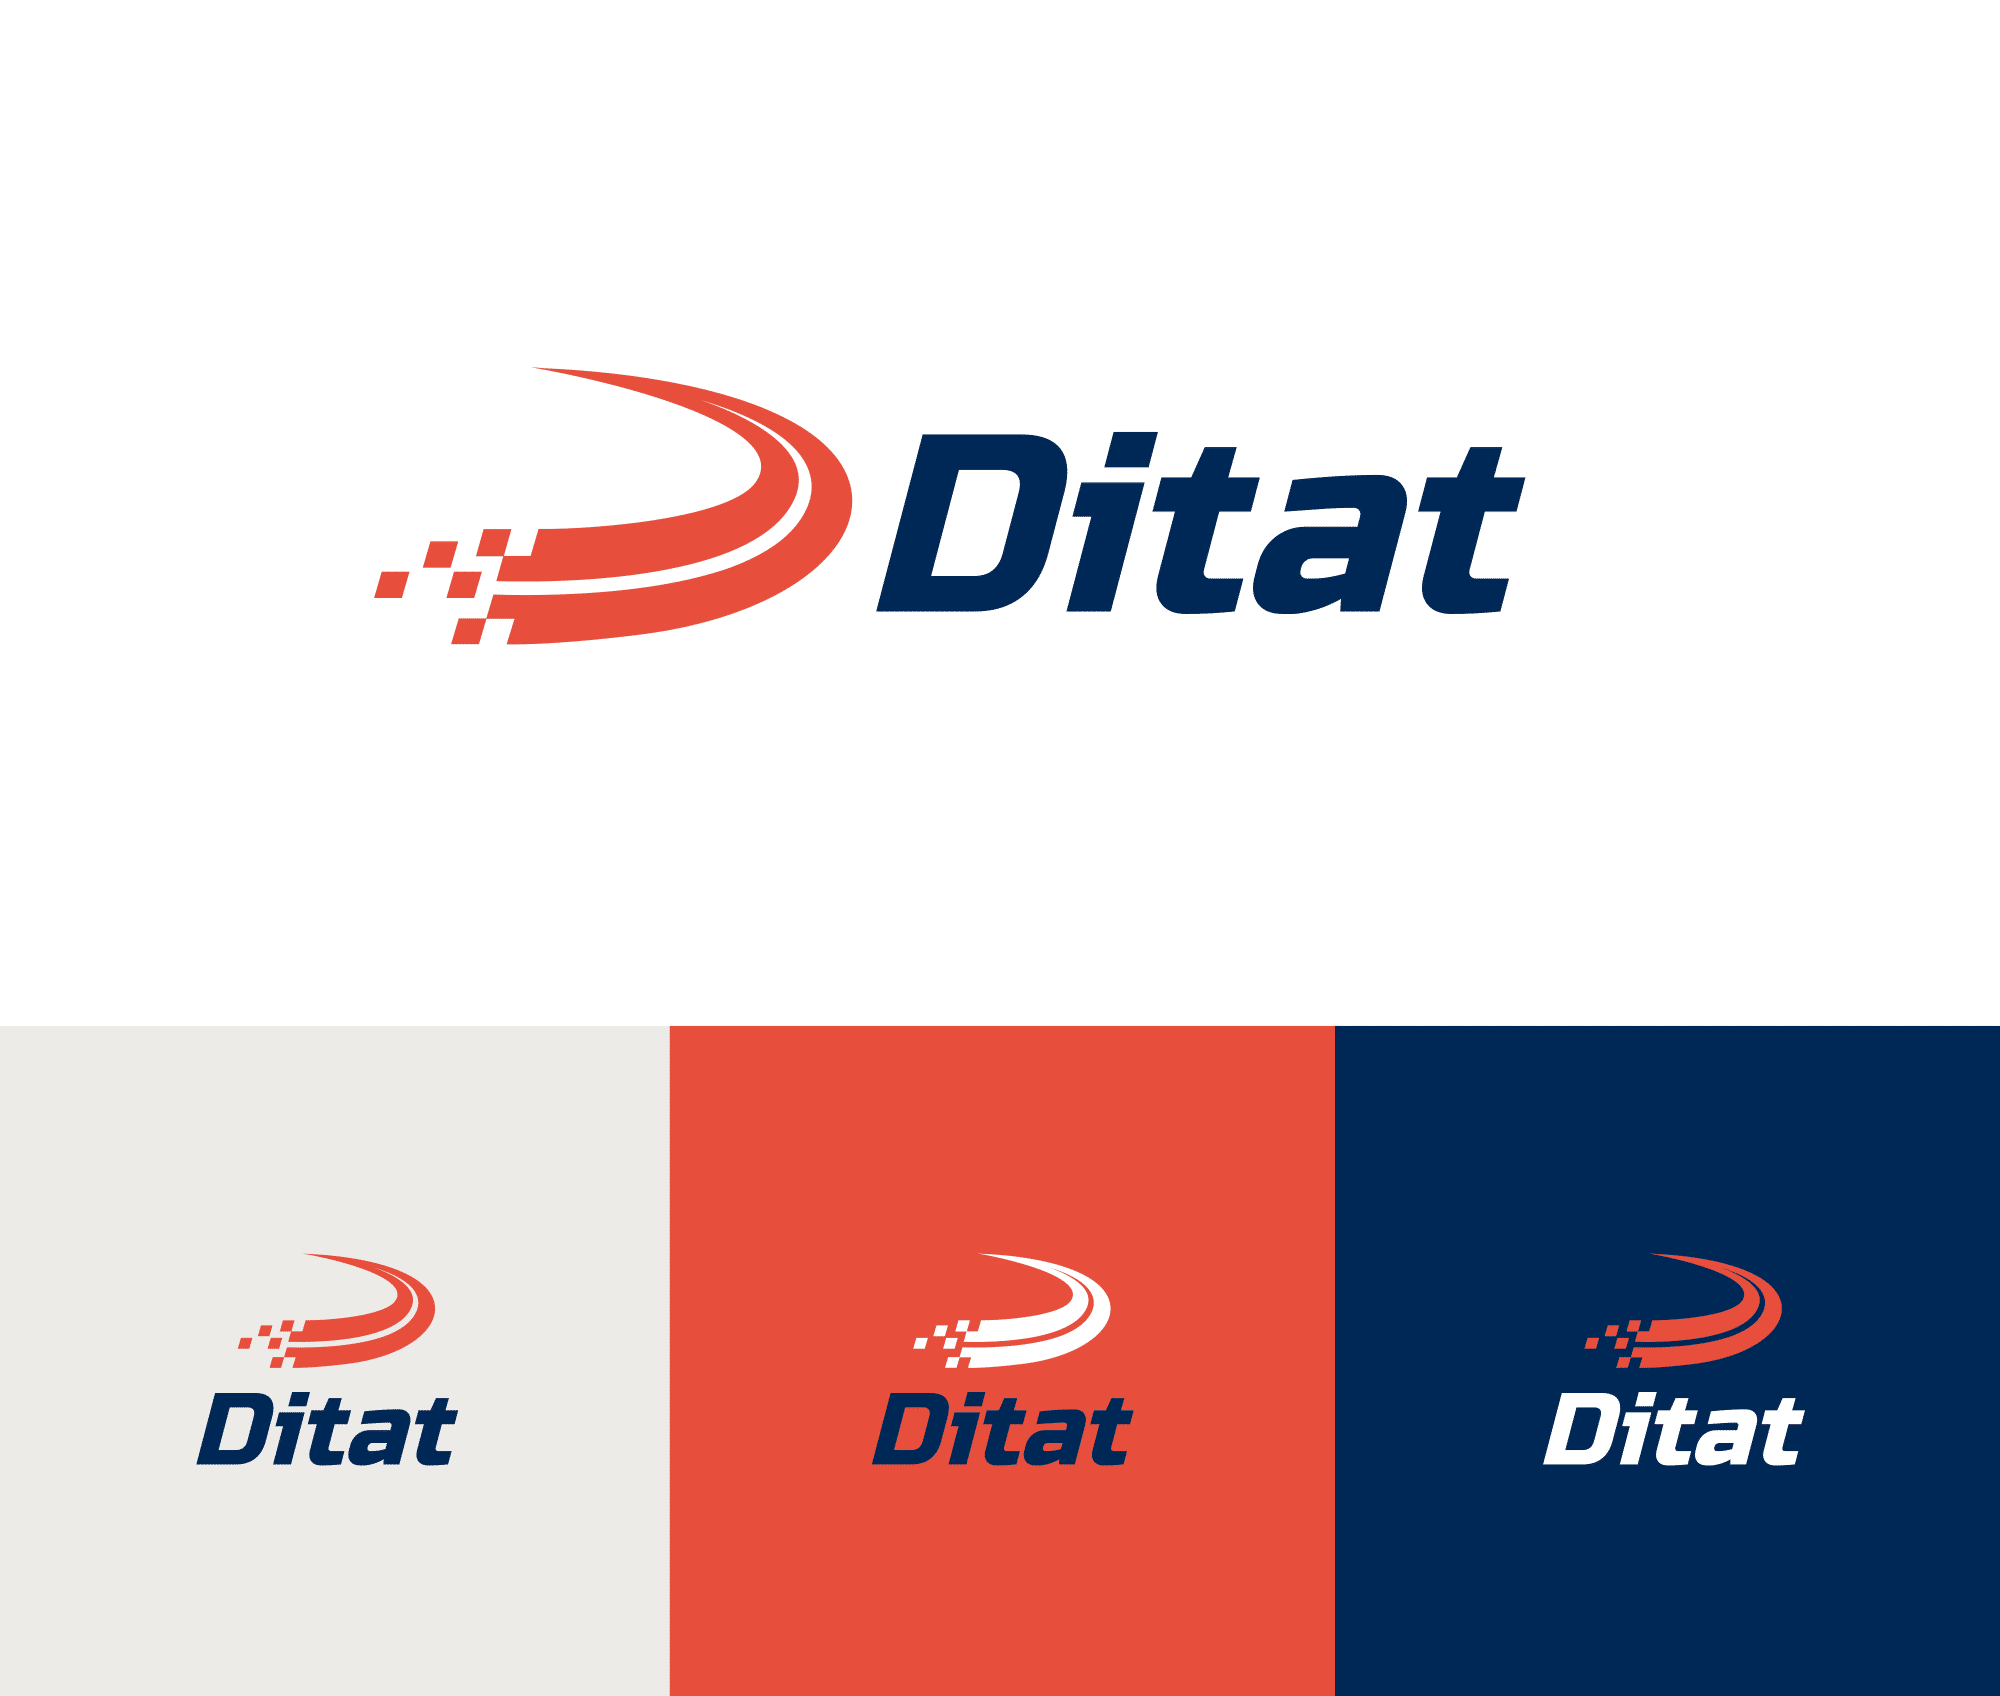 Ditat logo lockup samples